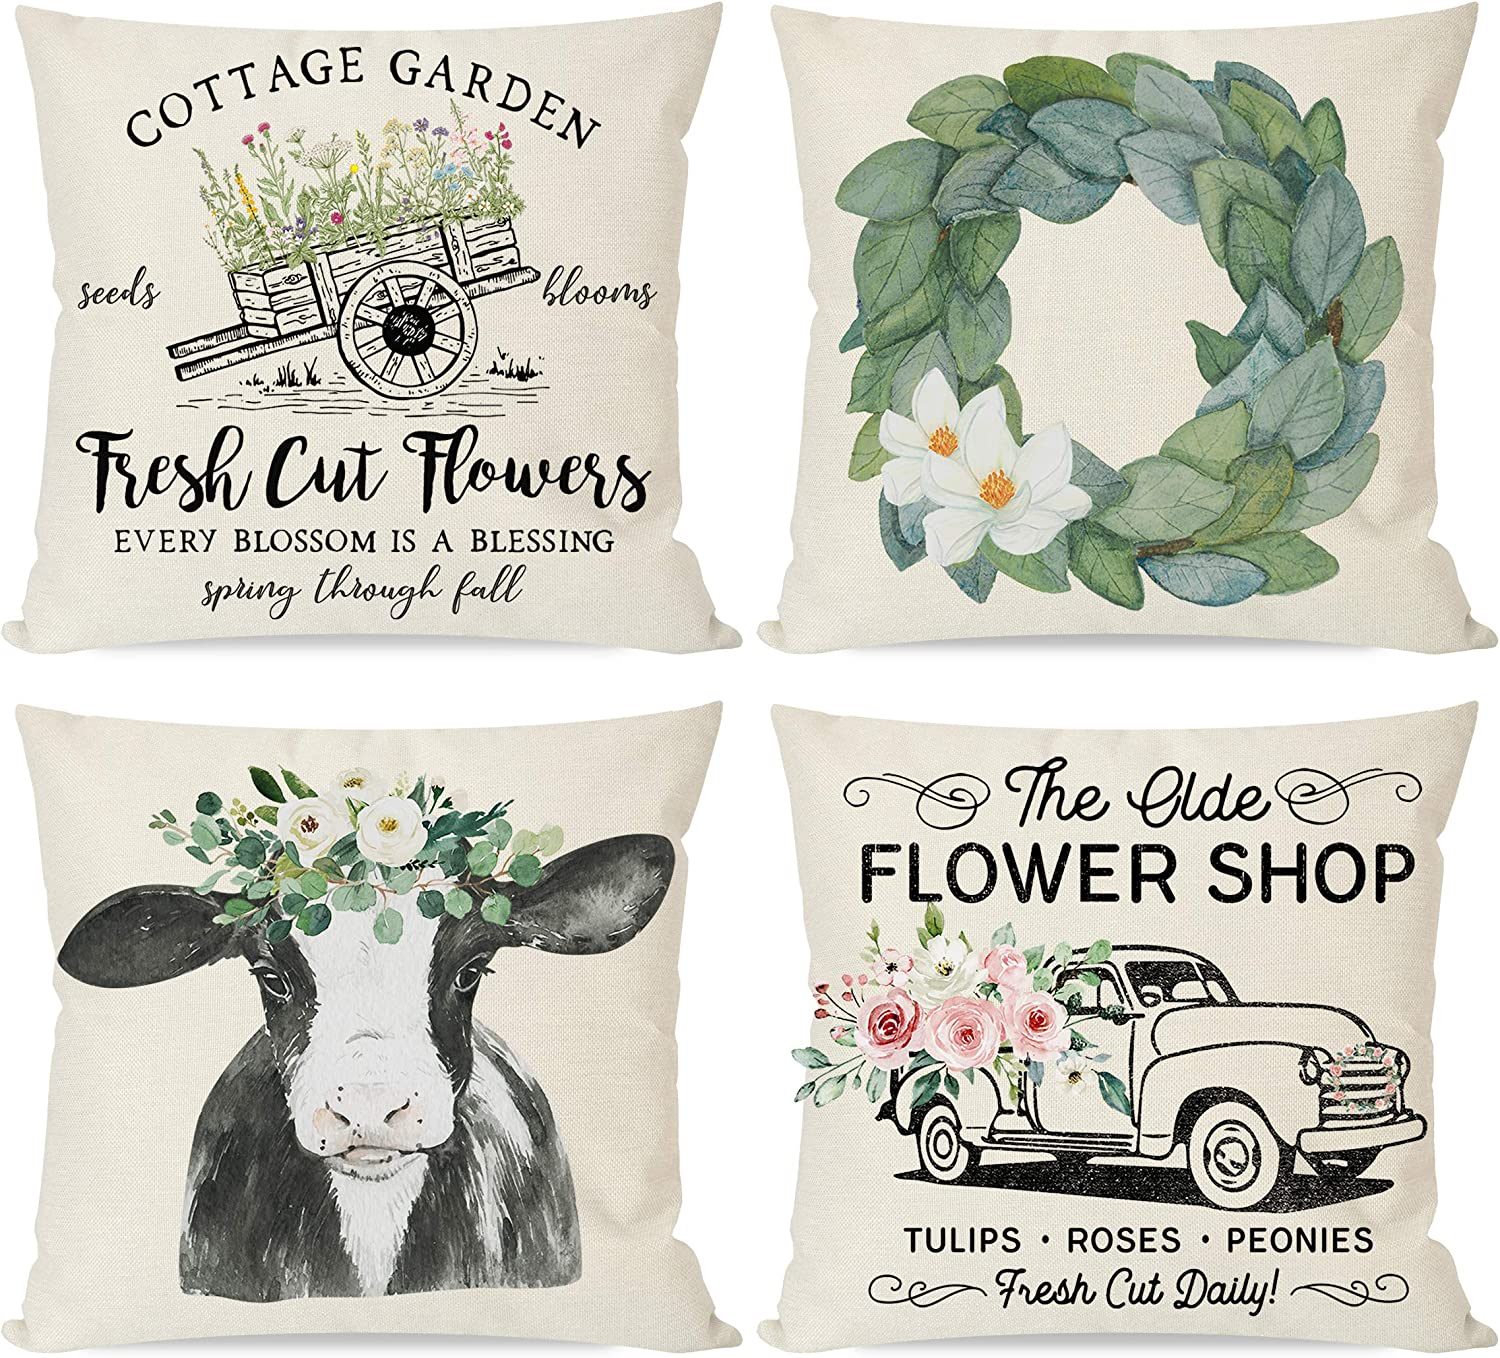 PANDICORN Spring Pillow Covers 18x18 Set of 4 for Home Decor, Farmhouse Magnolia Wreath Country Cow, Vintage Flower Floral Truck, Rustic Decorative Throw Pillow Cases for Outdoor Porch Decorations